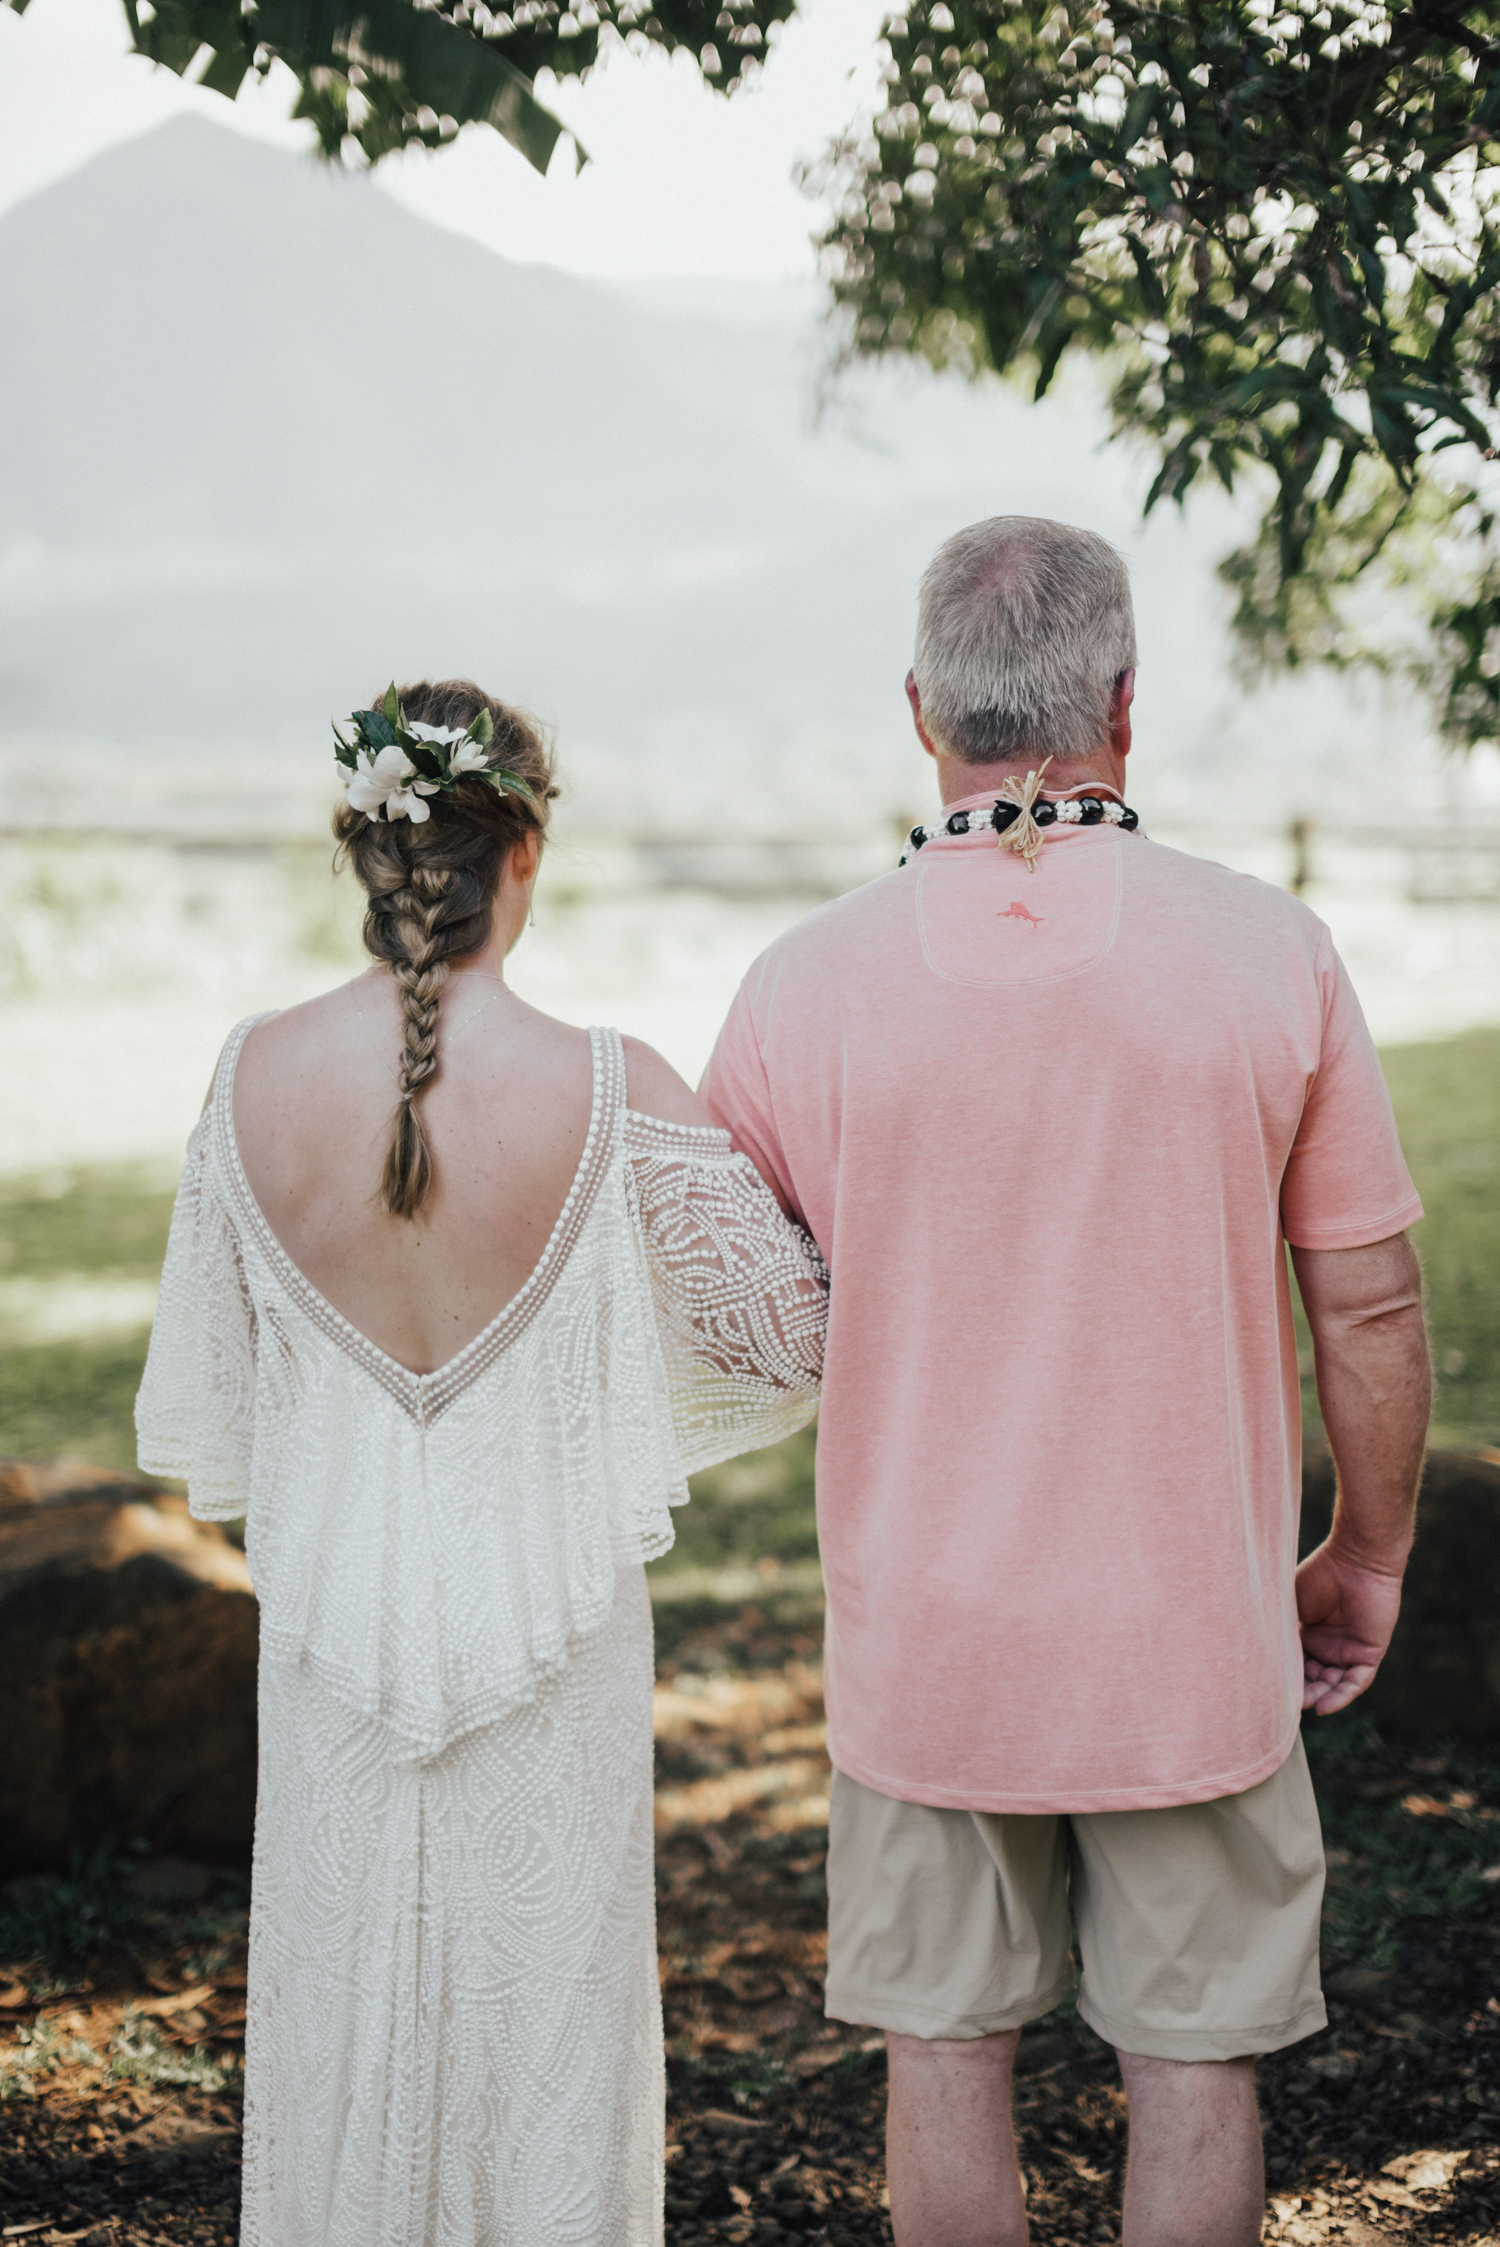 Kauai-elopement-photographer-24.jpg